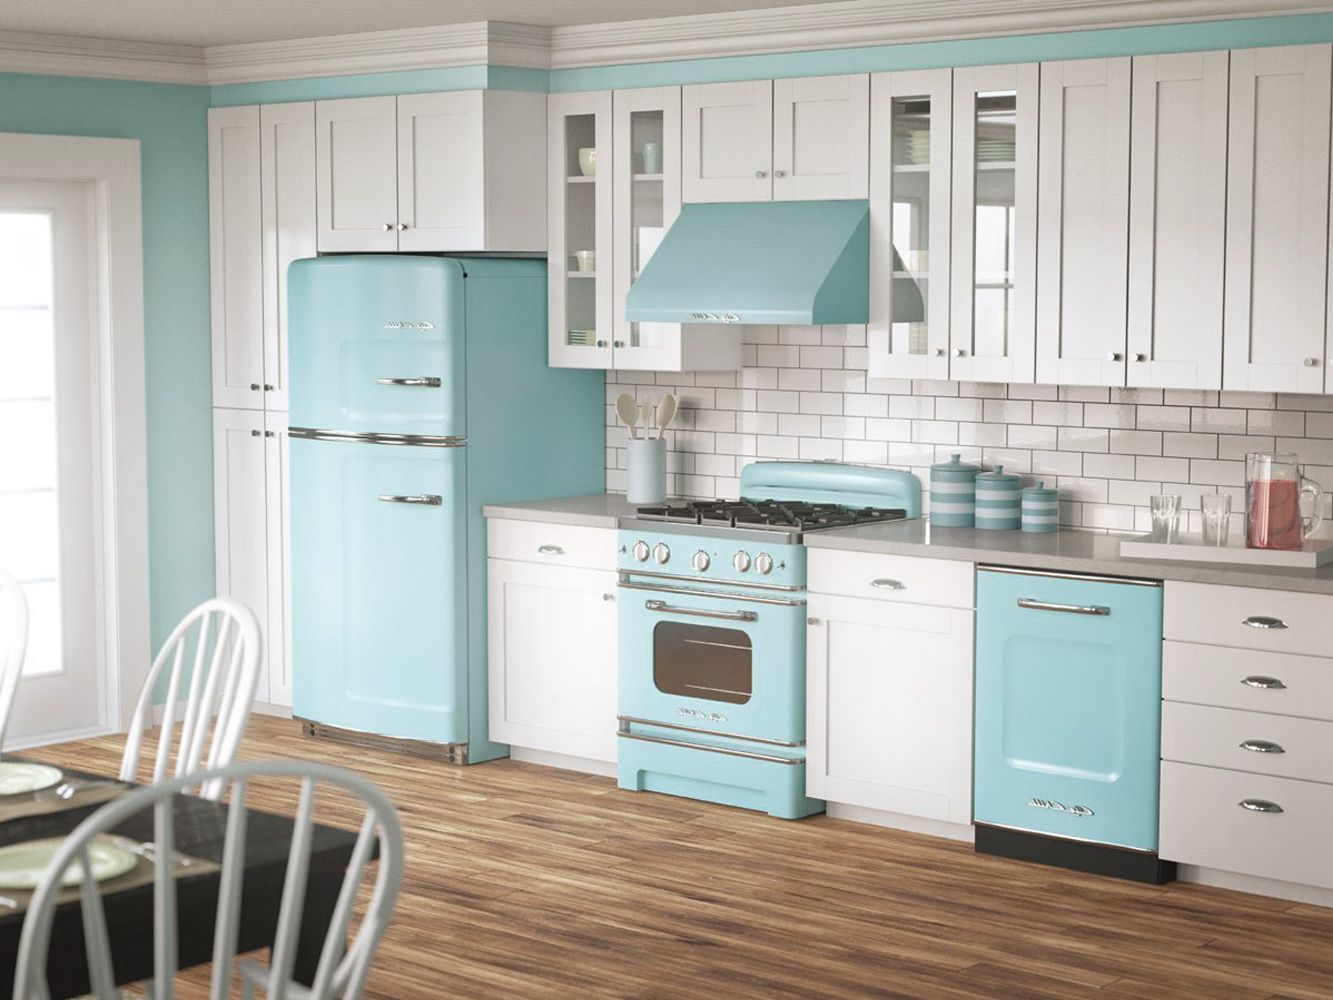 1950S Kitchens Enchanting 1950S Pastel Colors Kitchen Interior Ideas  Home Design Decorating Design